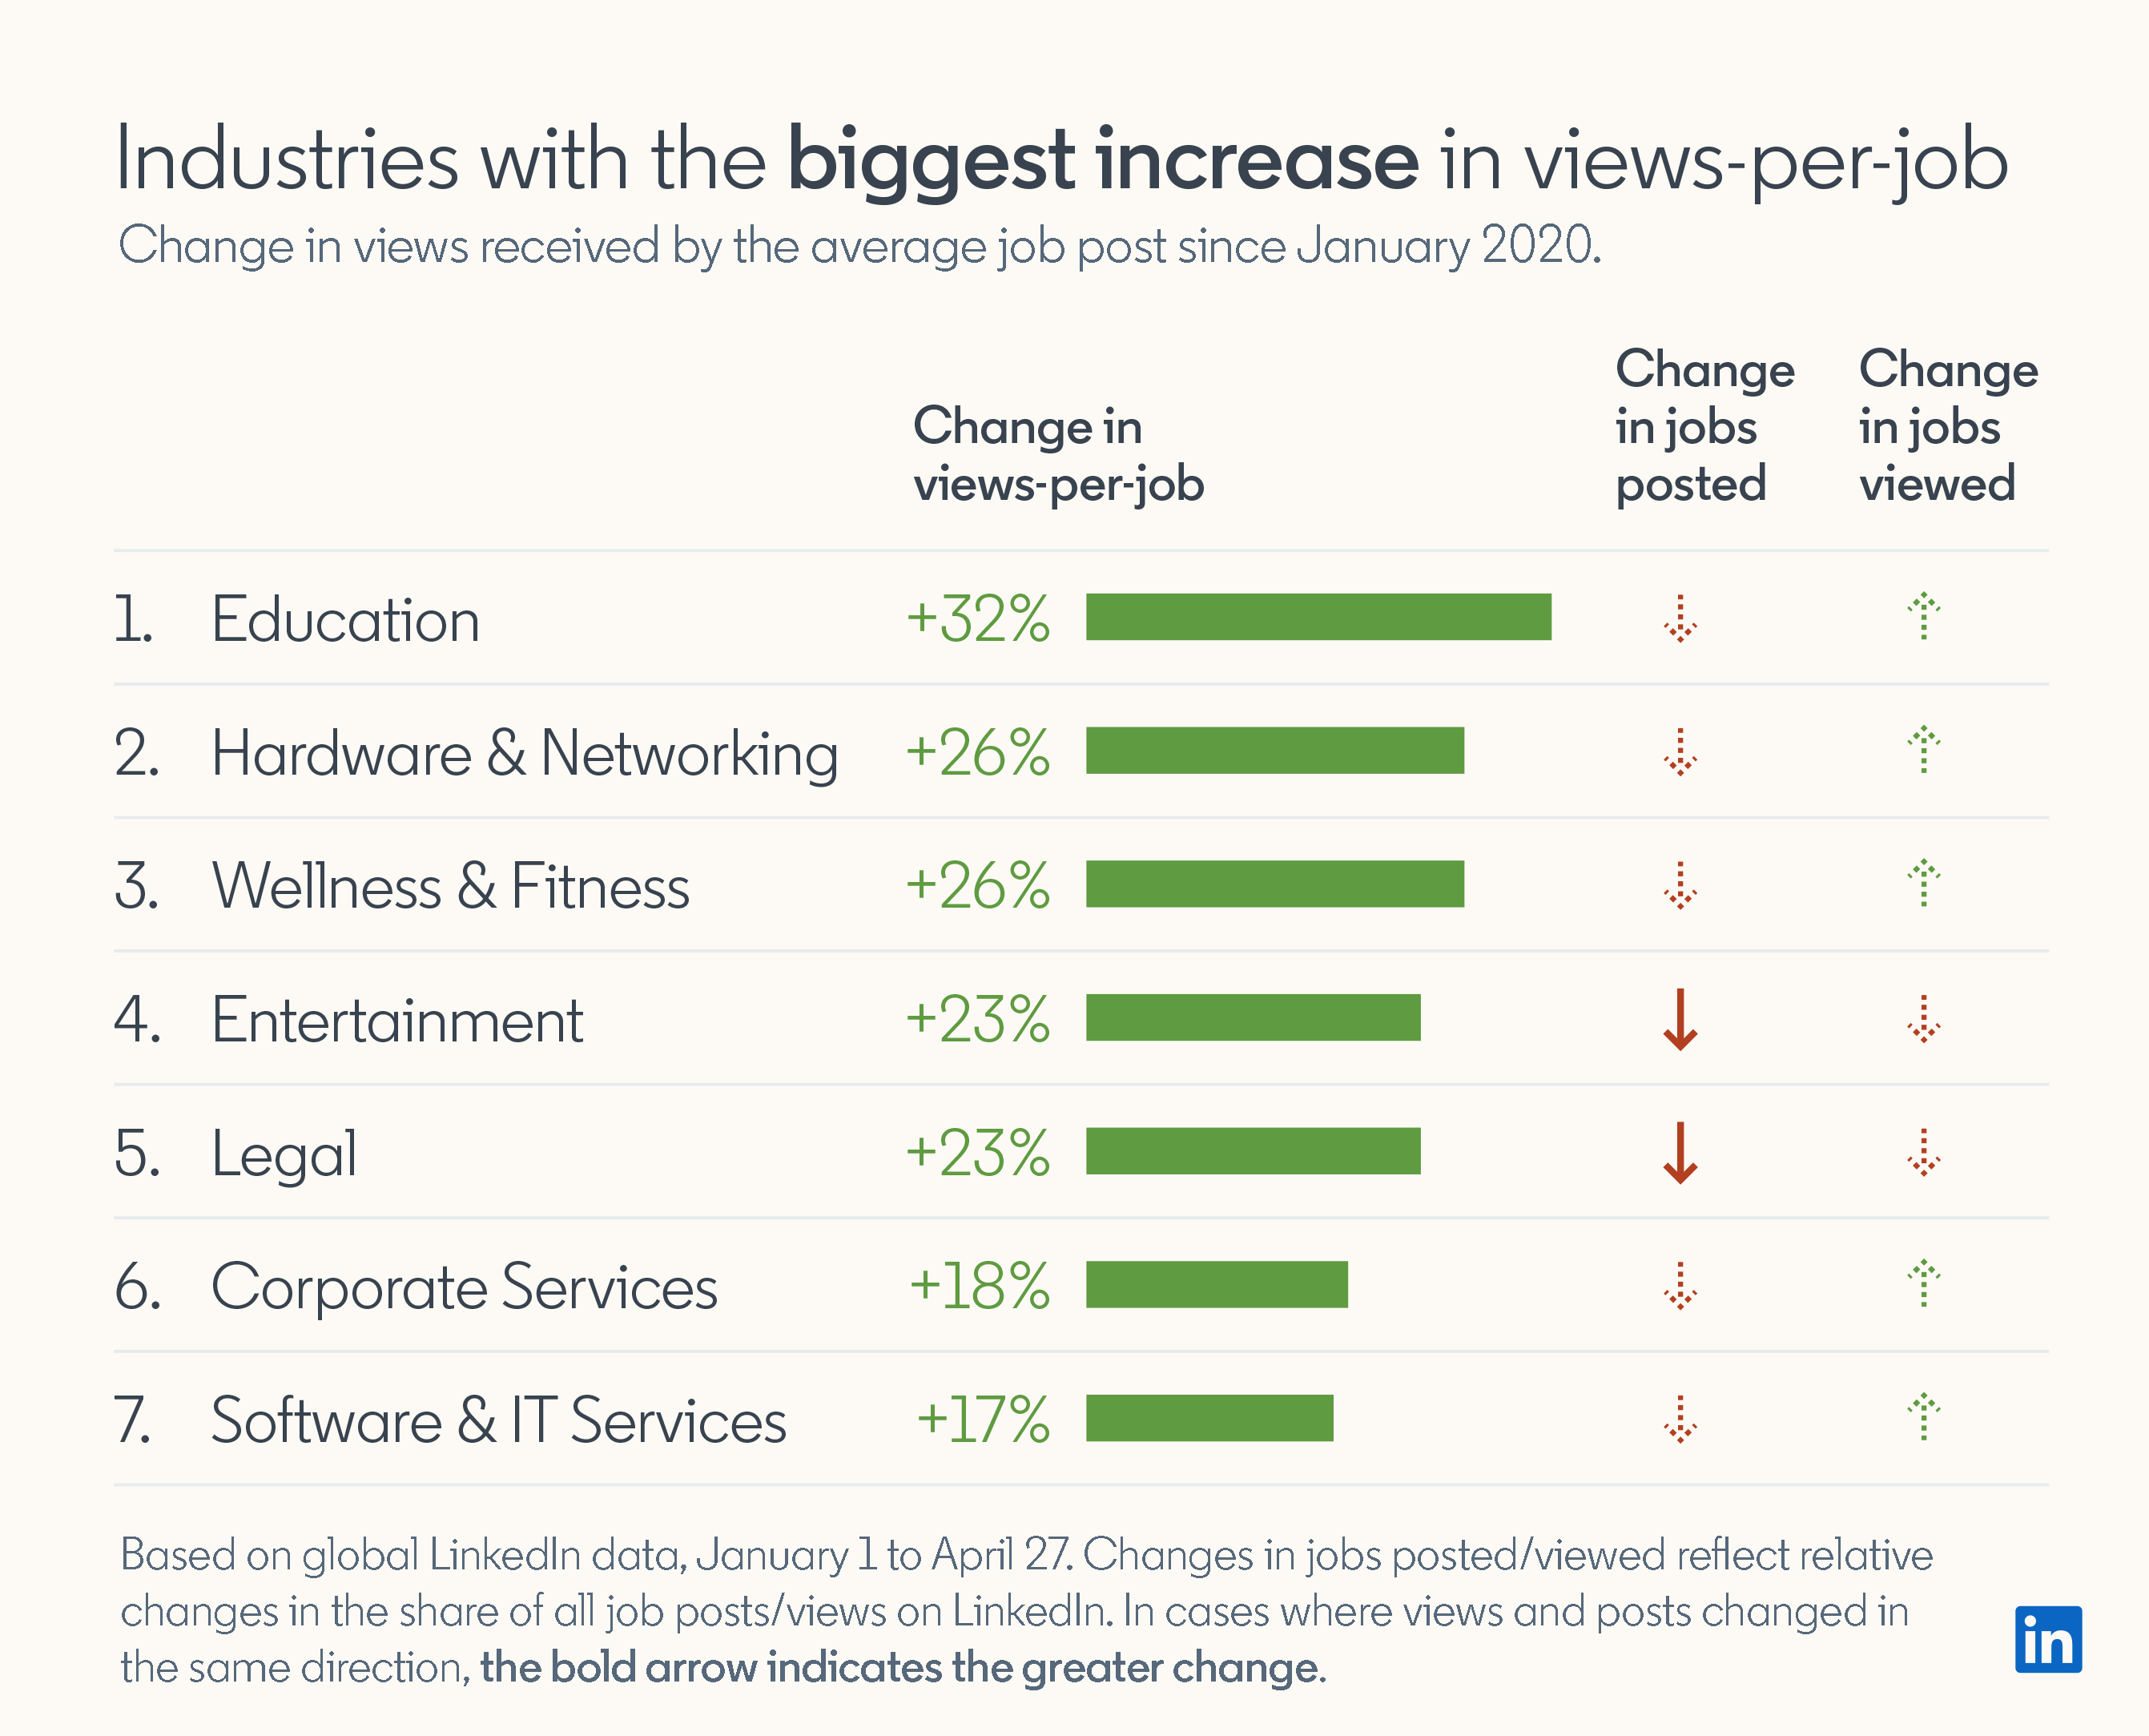 Industries with the biggest increase in views-per-job Change in views received by the average job post since January 2020.  1. Education Change in views-per-job: +32% Change in jobs posted: decreased Change in jobs viewed: increased  2. Hardware & Networking Change in views-per-job: +26% Change in jobs posted: decreased Change in jobs viewed: increased  3. Wellness & Fitness Change in views-per-job: +26% Change in jobs posted: decreased Change in jobs viewed: increased  4. Entertainment Change in views-per-job: +23% Change in jobs posted: decreased Change in jobs viewed: decreased  5. Legal Change in views-per-job: +23% Change in jobs posted: decreased Change in jobs viewed: decreased  6. Corporate Services Change in views-per-job: +18% Change in jobs posted: decreased Change in jobs viewed: increased  7. Software & IT Services Change in views-per-job: +17% Change in jobs posted: decreased Change in jobs viewed: increased  Based on global LinkedIn date, January 1 to April 27. Changes in jobs posted/viewed reflect relative changes in the share of all job posts/views on LinkedIn.